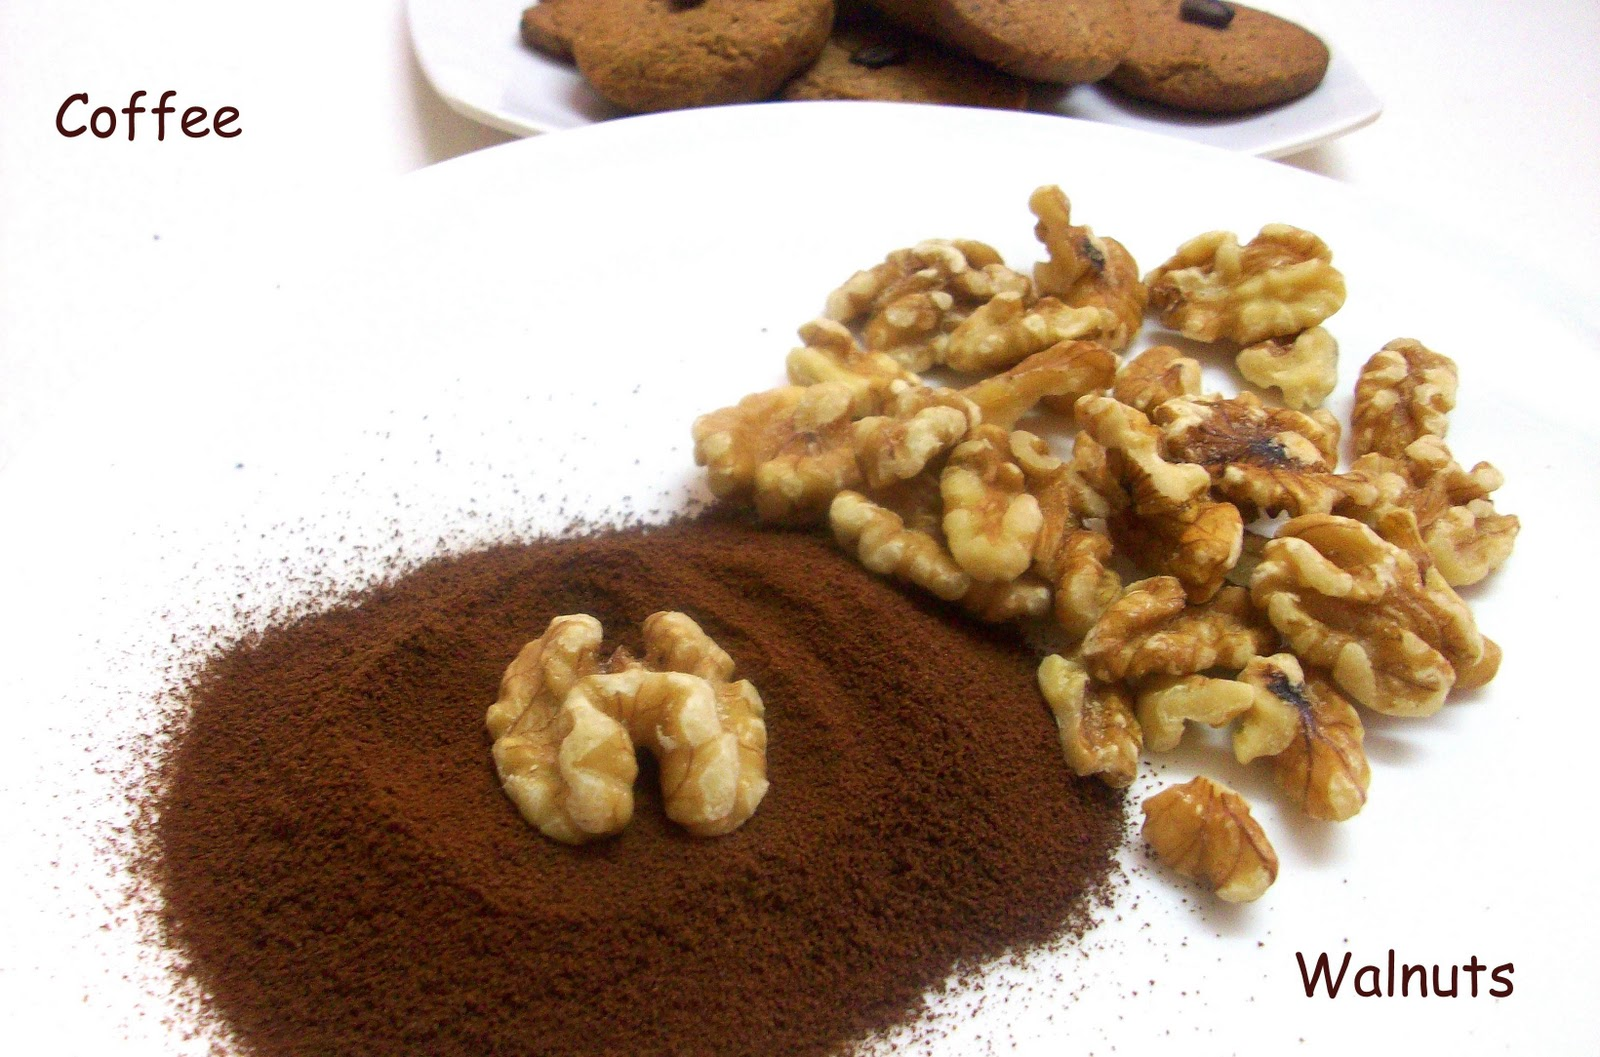 walnut cookies oatmeal walnut cocoa nib cookies cream cheese walnut ...